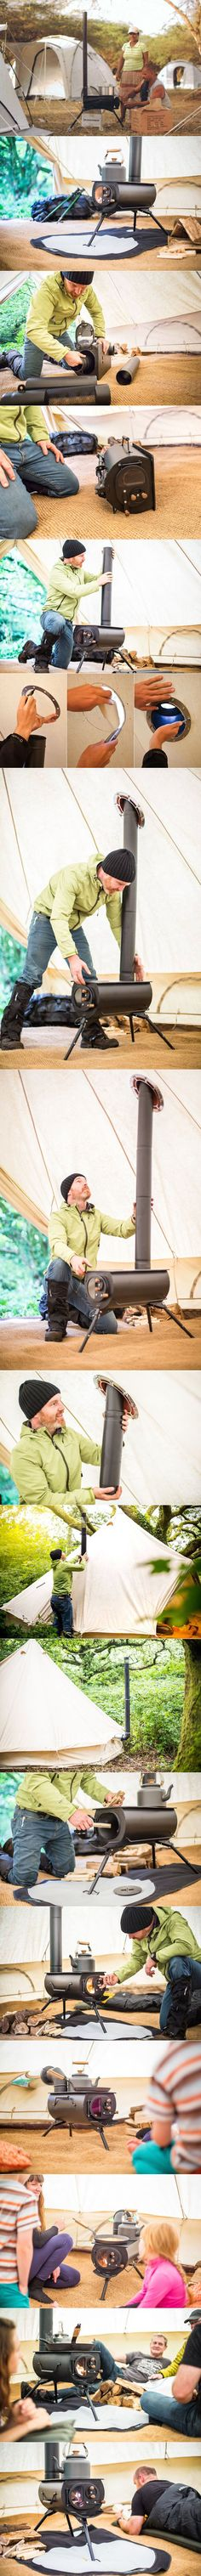 Frontier Plus ∙ A next-generation portable woodburning stove